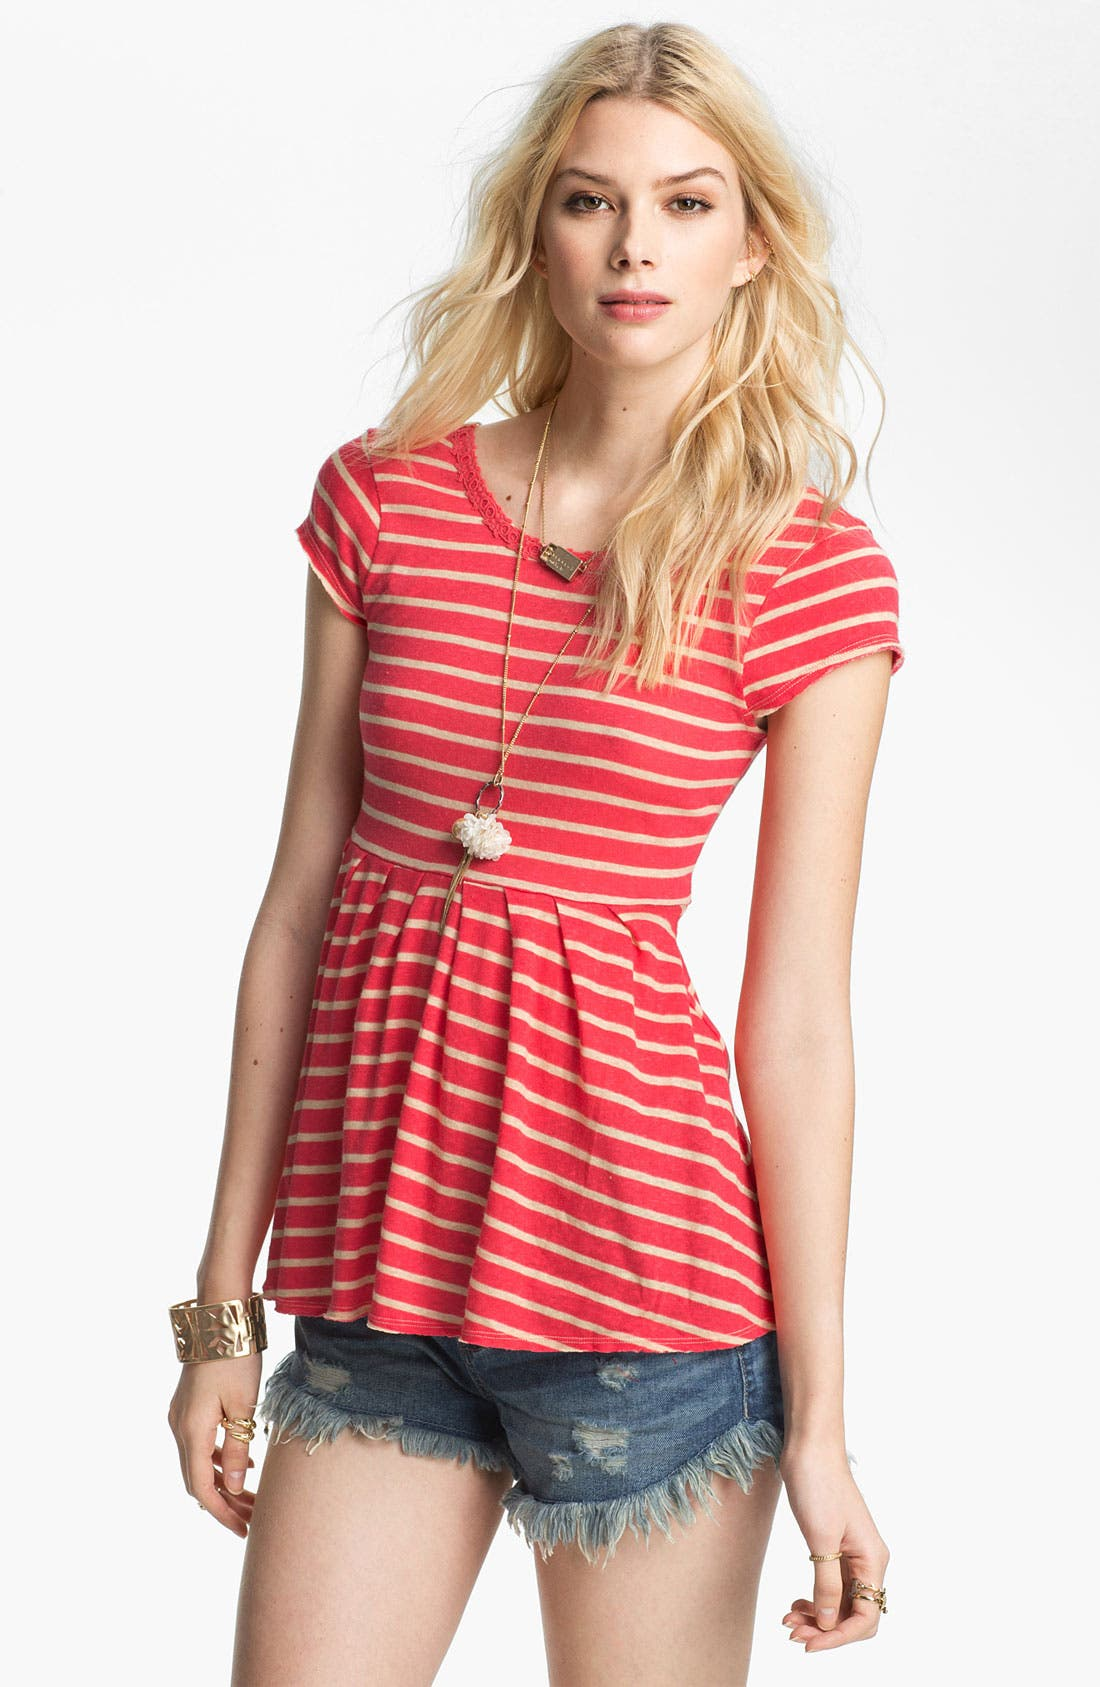 Alternate Image 1 Selected - Free People 'Crazy Daisy' Peplum Tee